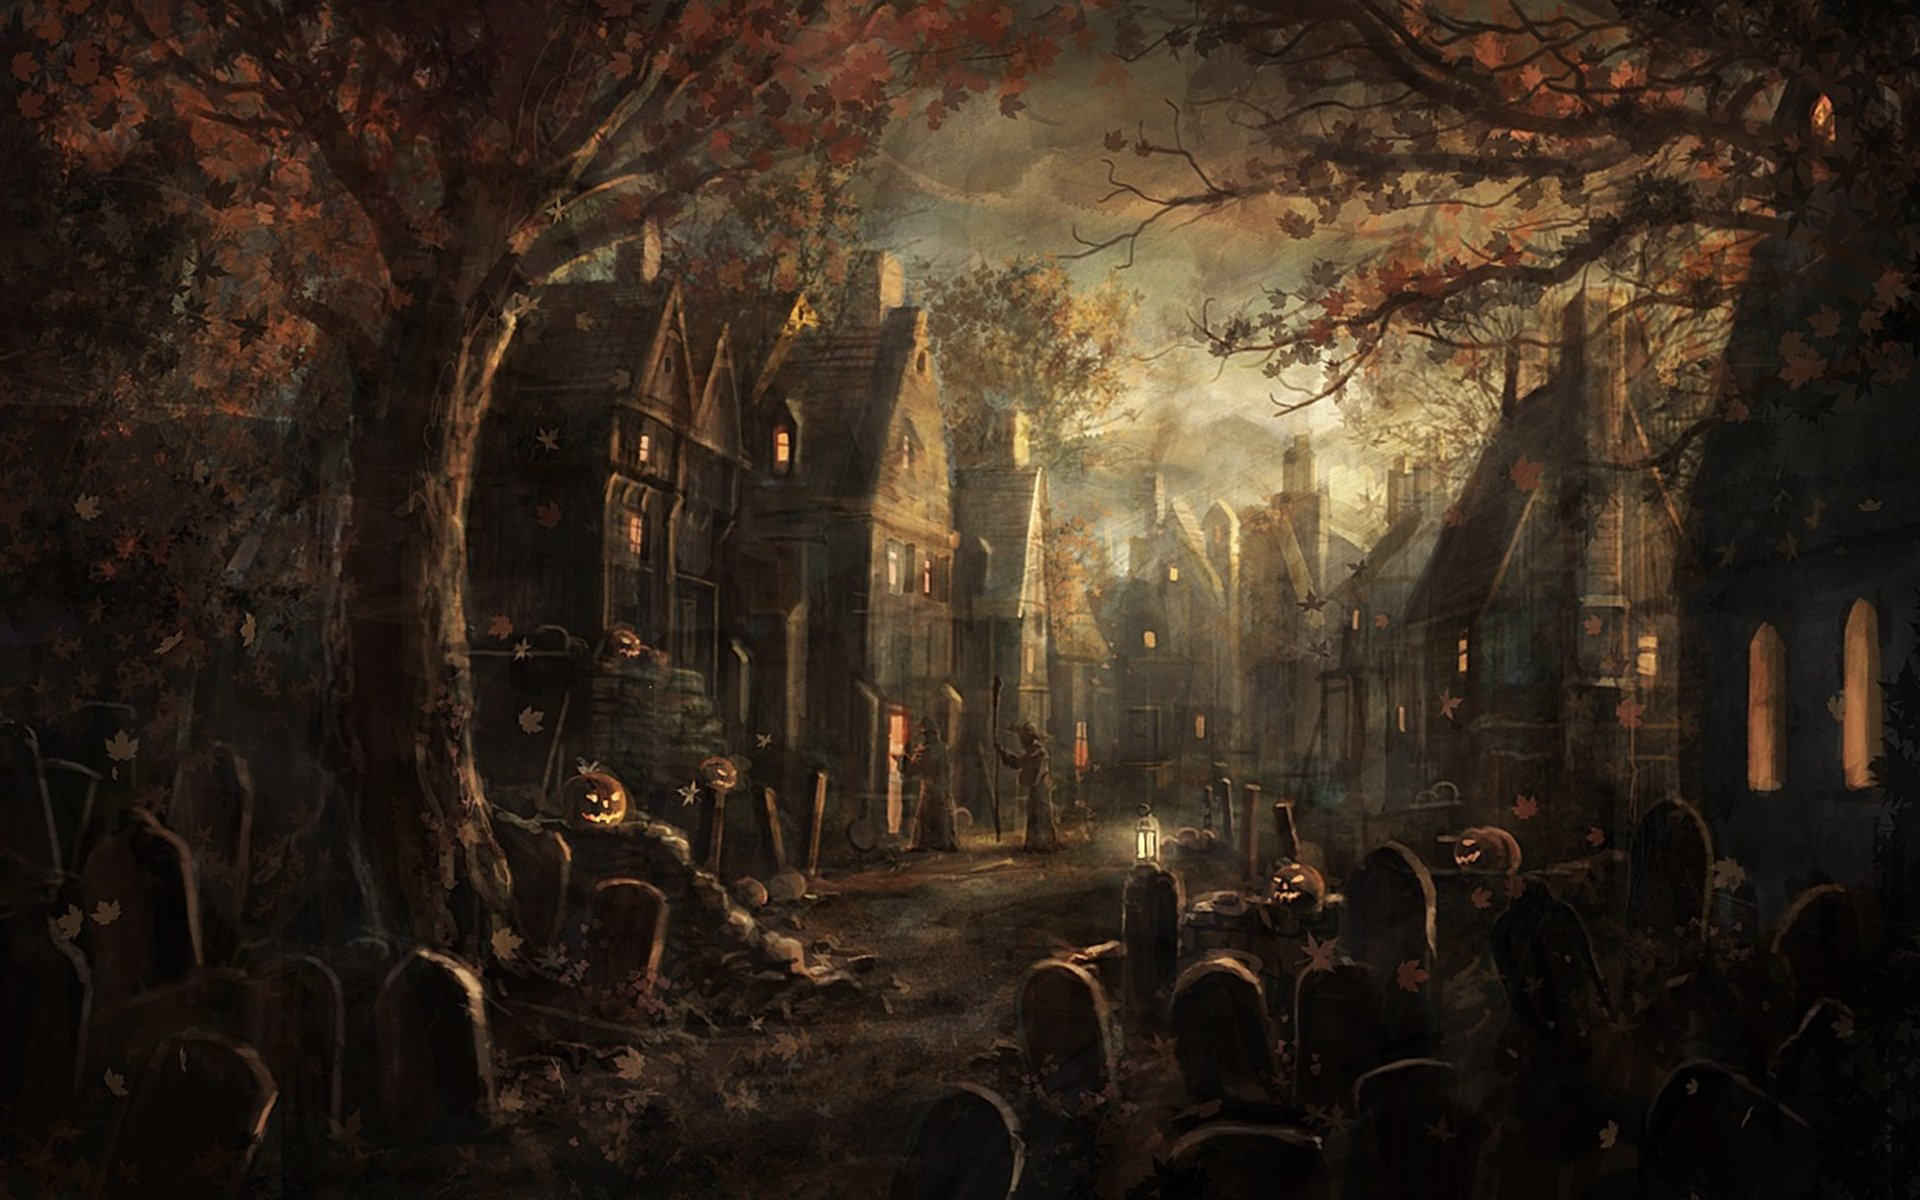 Artistic - Halloween  Fall Fantasy House Village Wallpaper